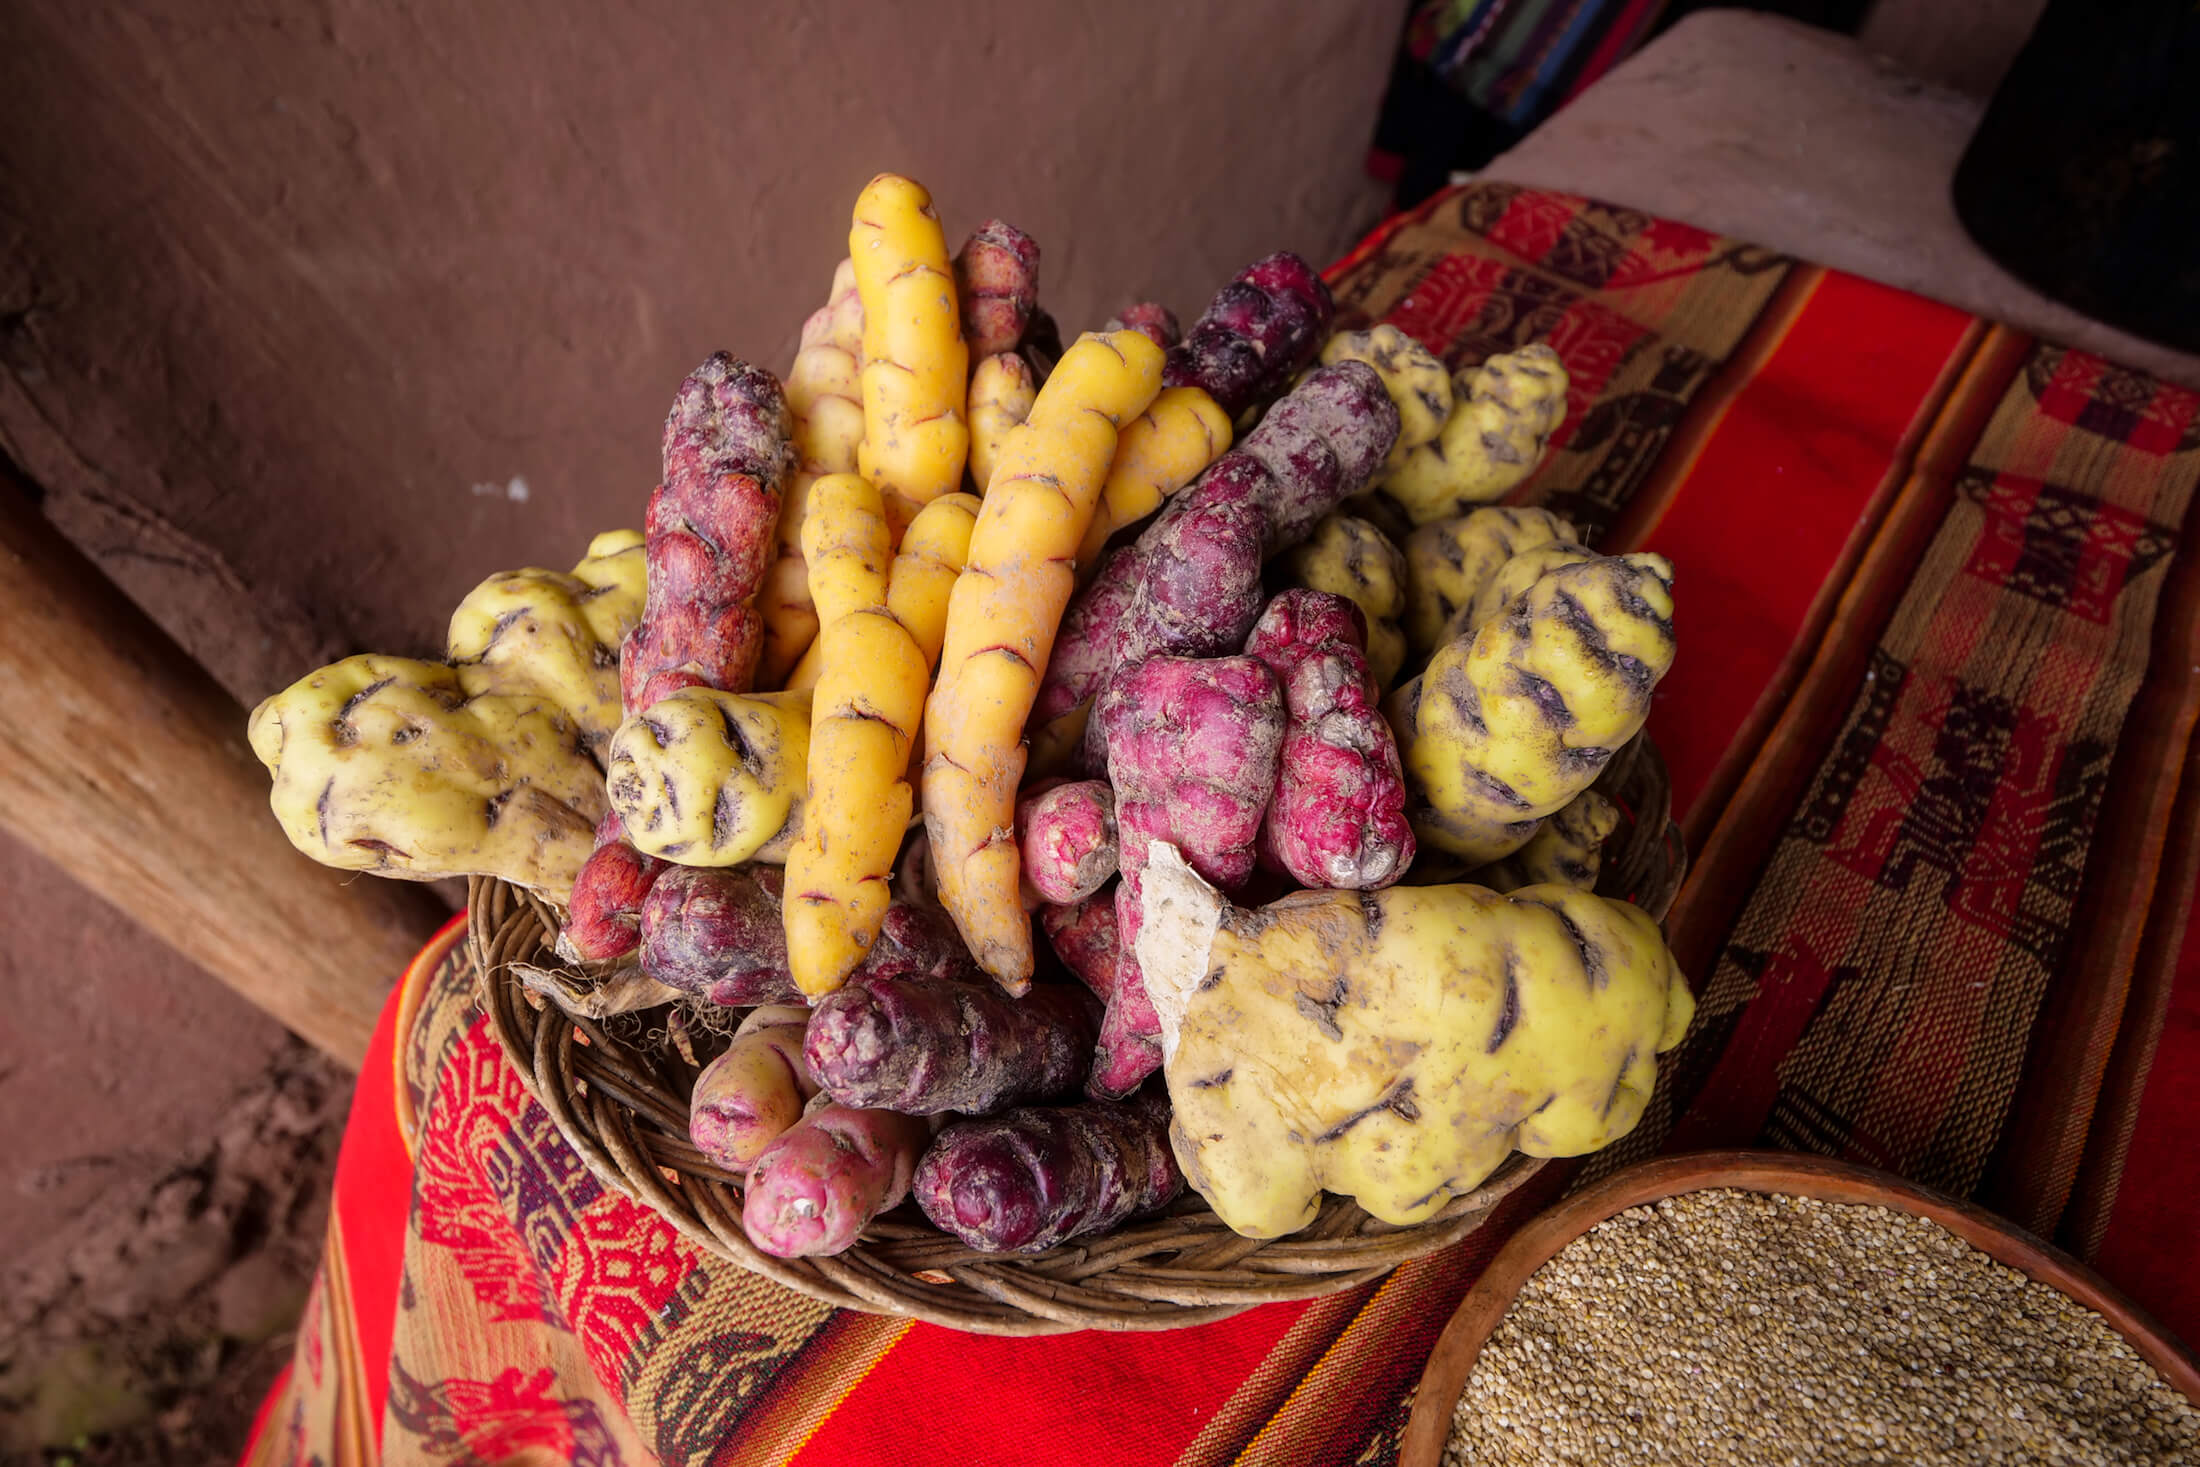 The potatoes, tubers, and roots of Peru will literally blow your mind